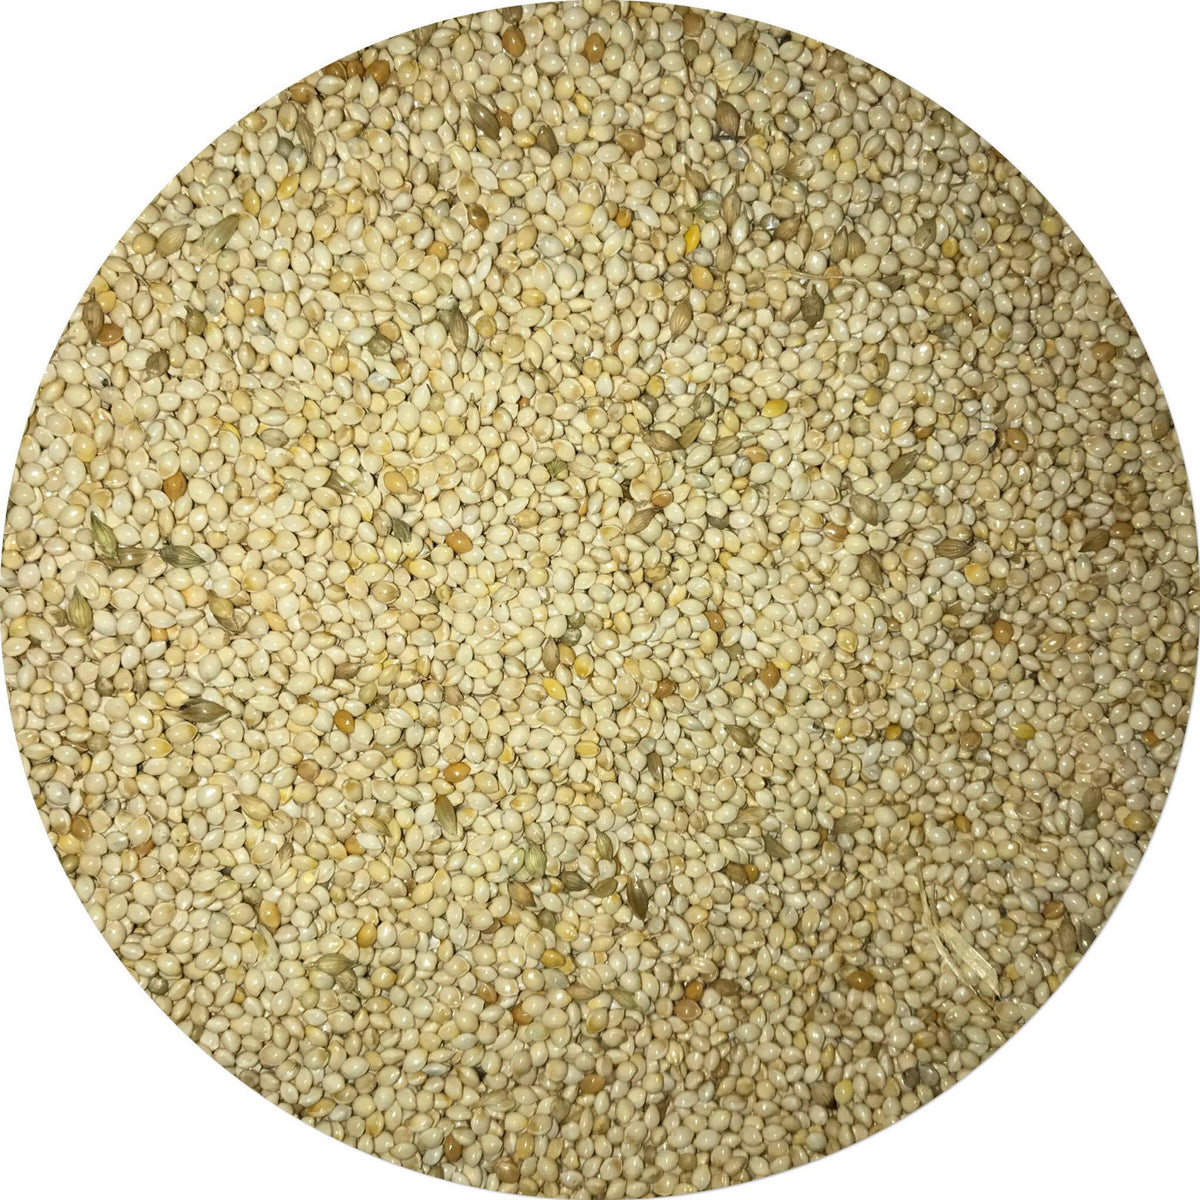 White French Millet